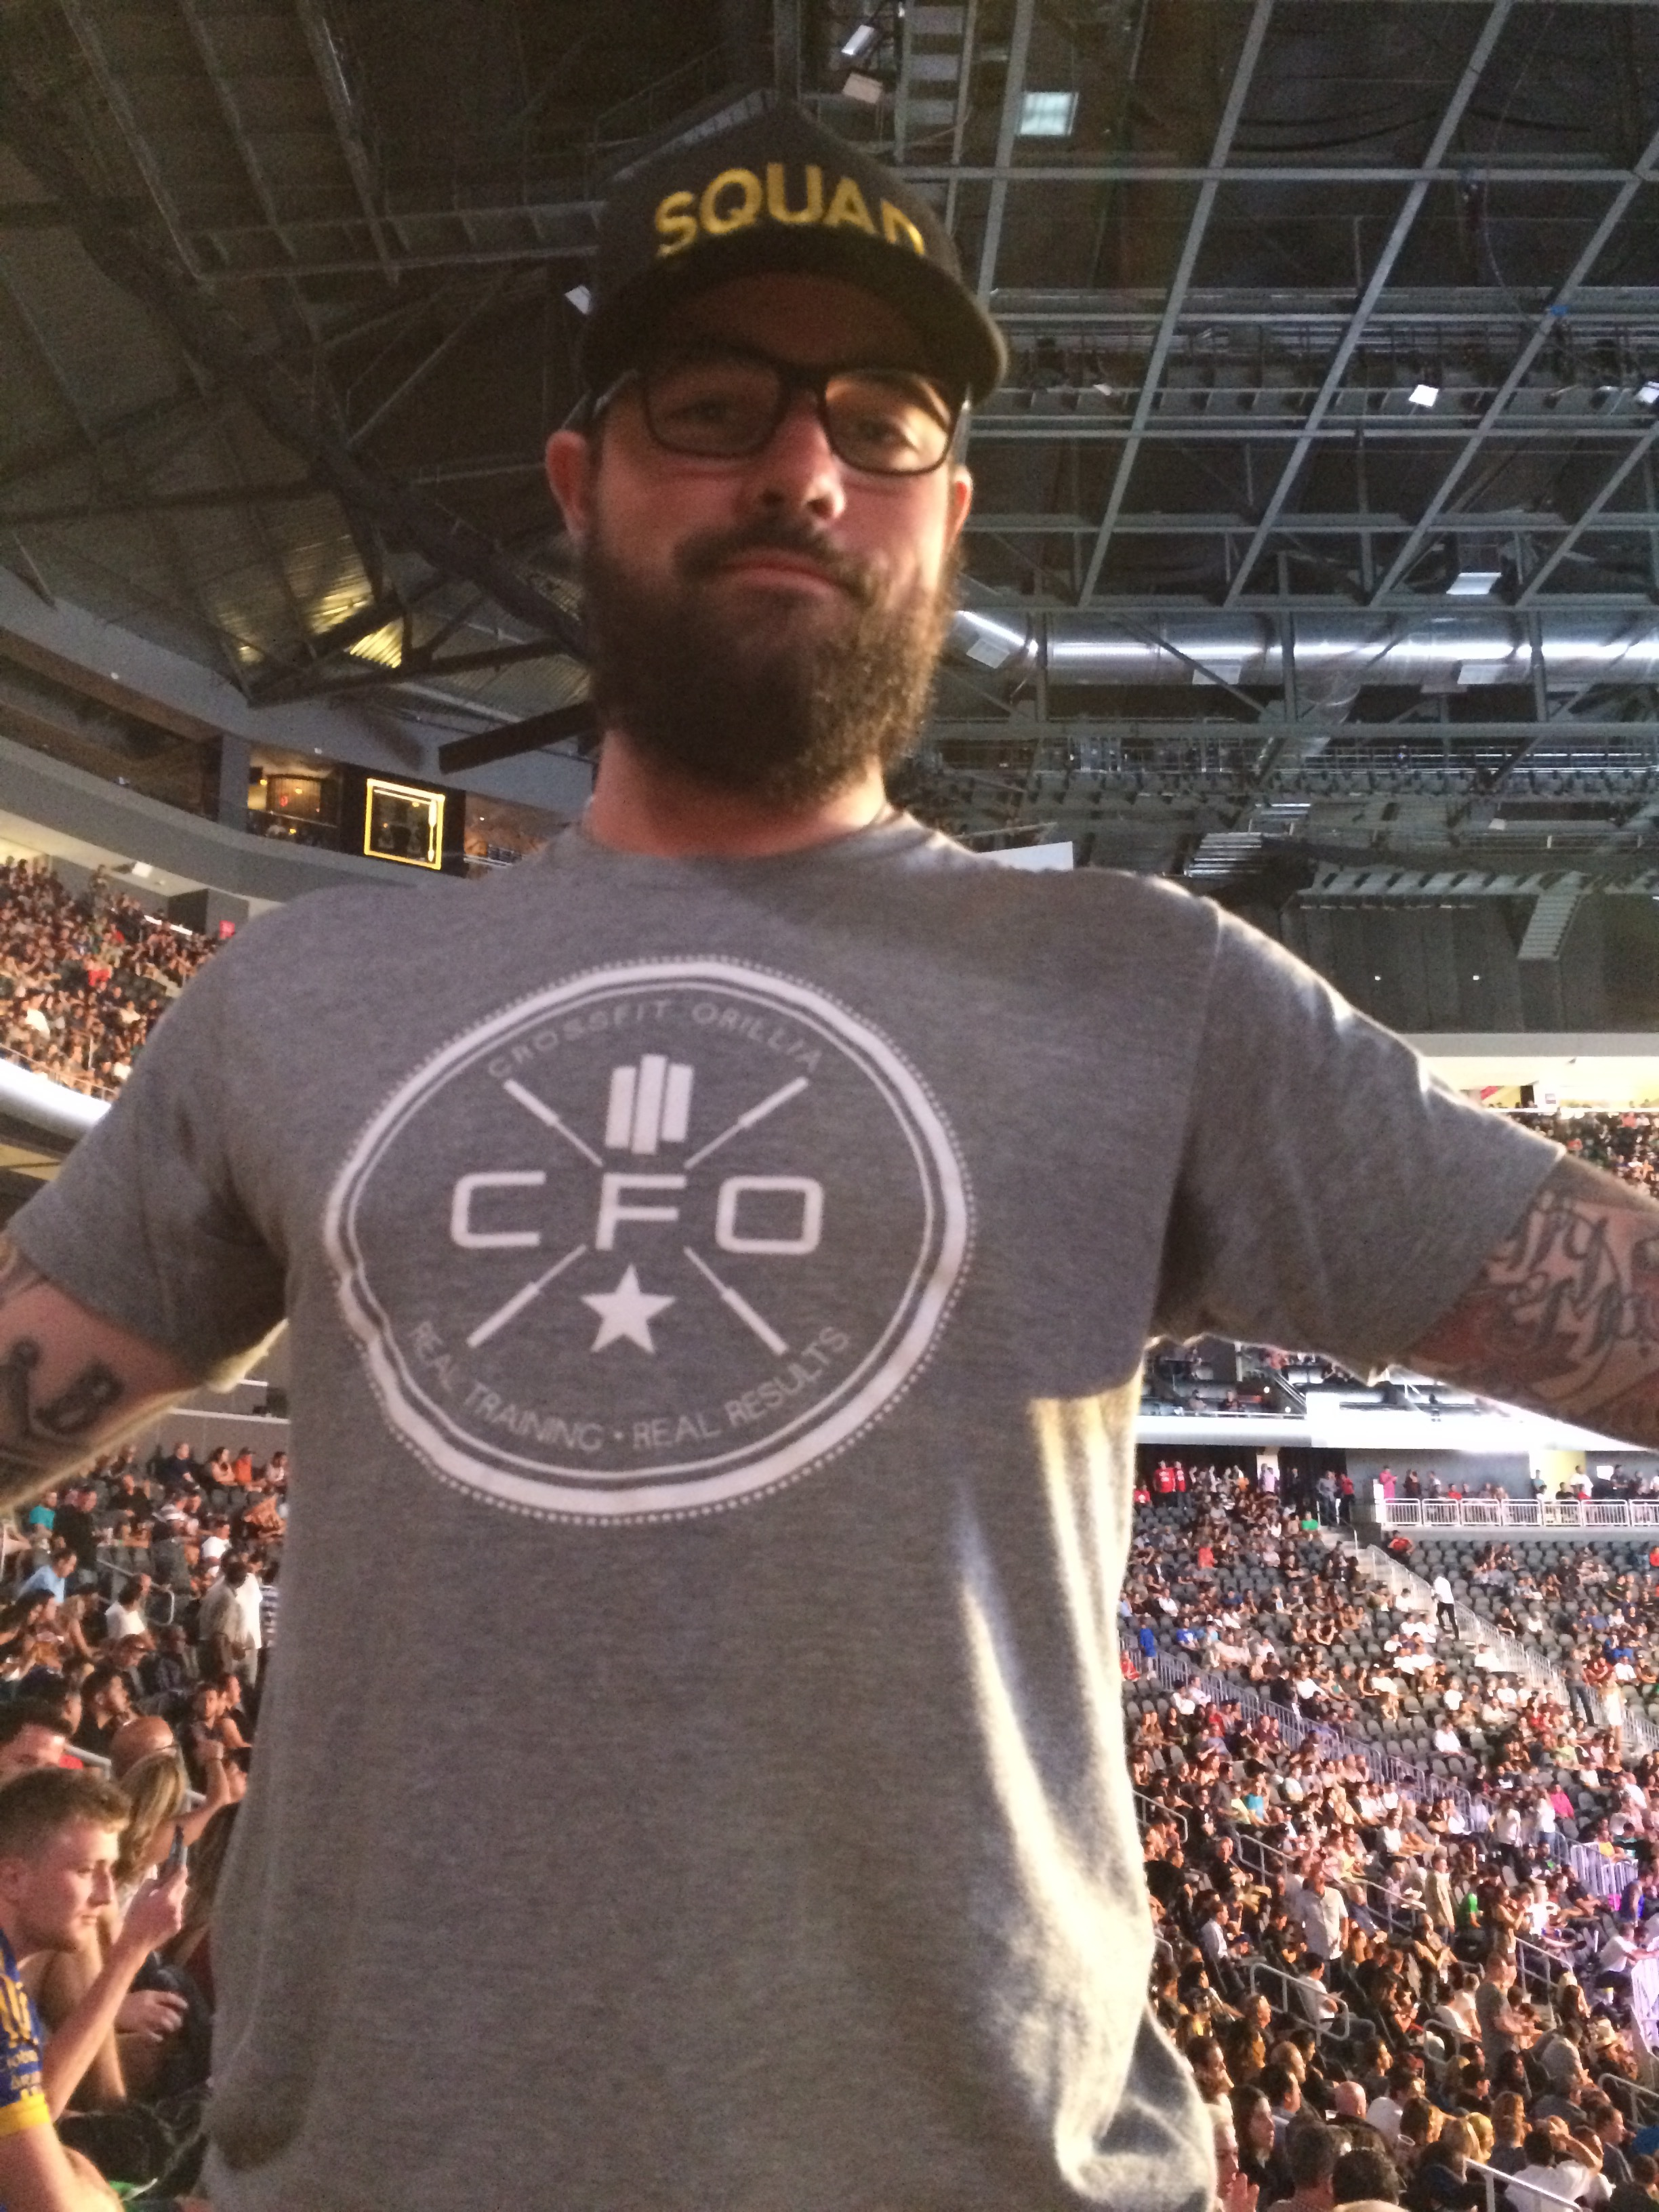 James repping CFO at the UFC fight this past weekend in Vegas!